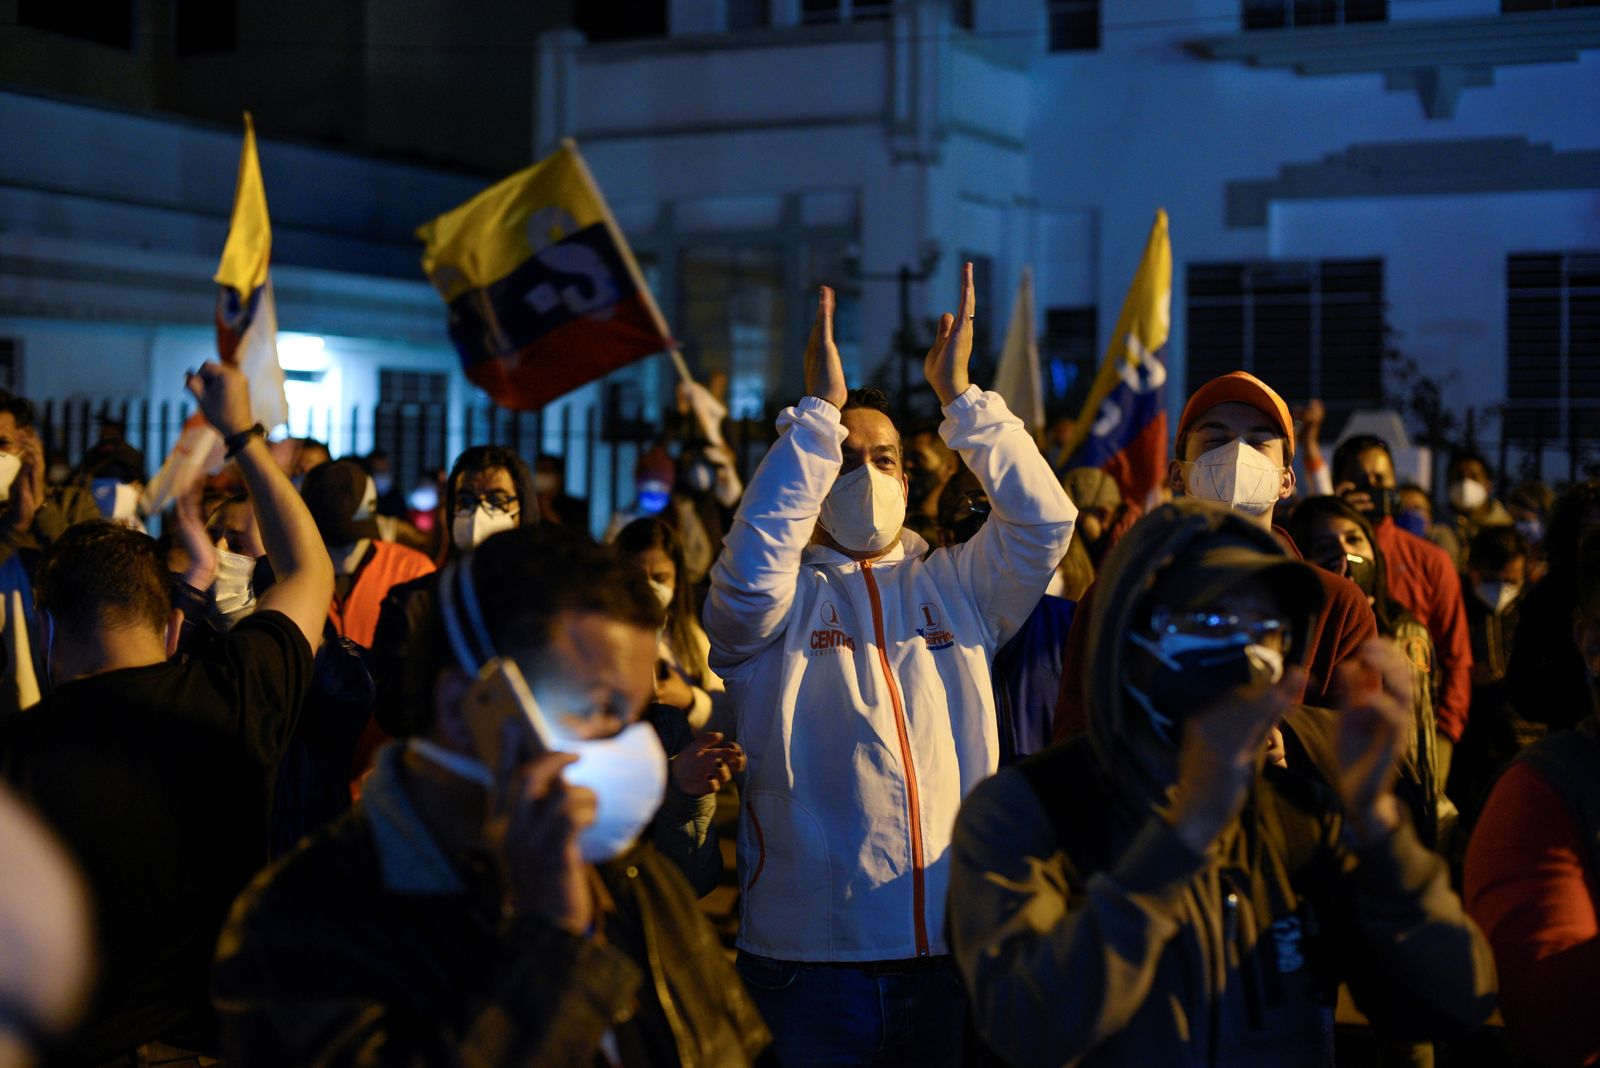 Supporters of Ecuador's presidential candidate Andres Arauz (not pictured) gather while waiting for official results of the presidential election, in Quito